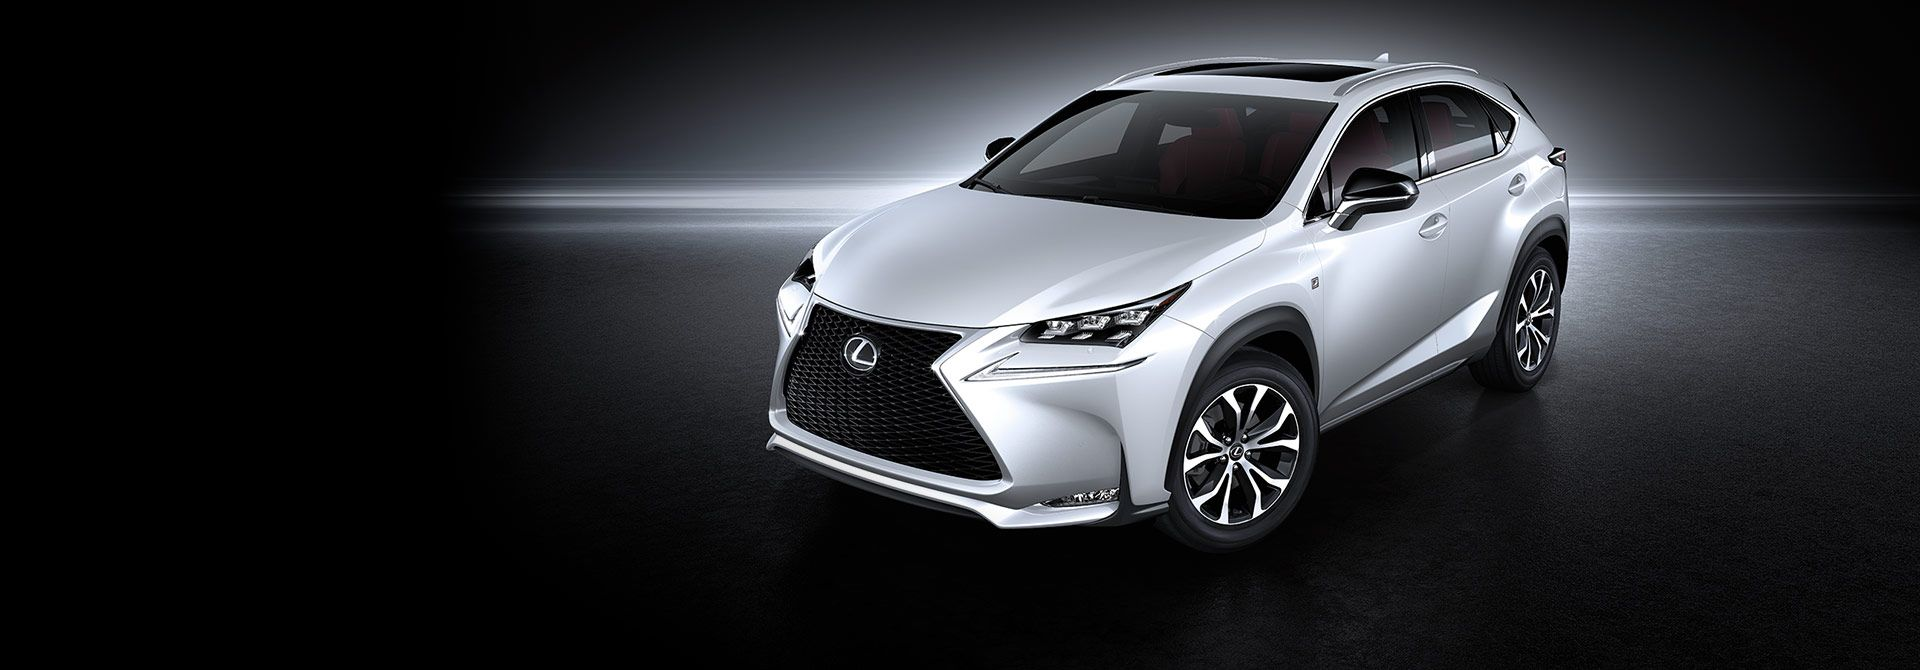 2015 NX 200t with F SPORT Series 1 in Eminent White